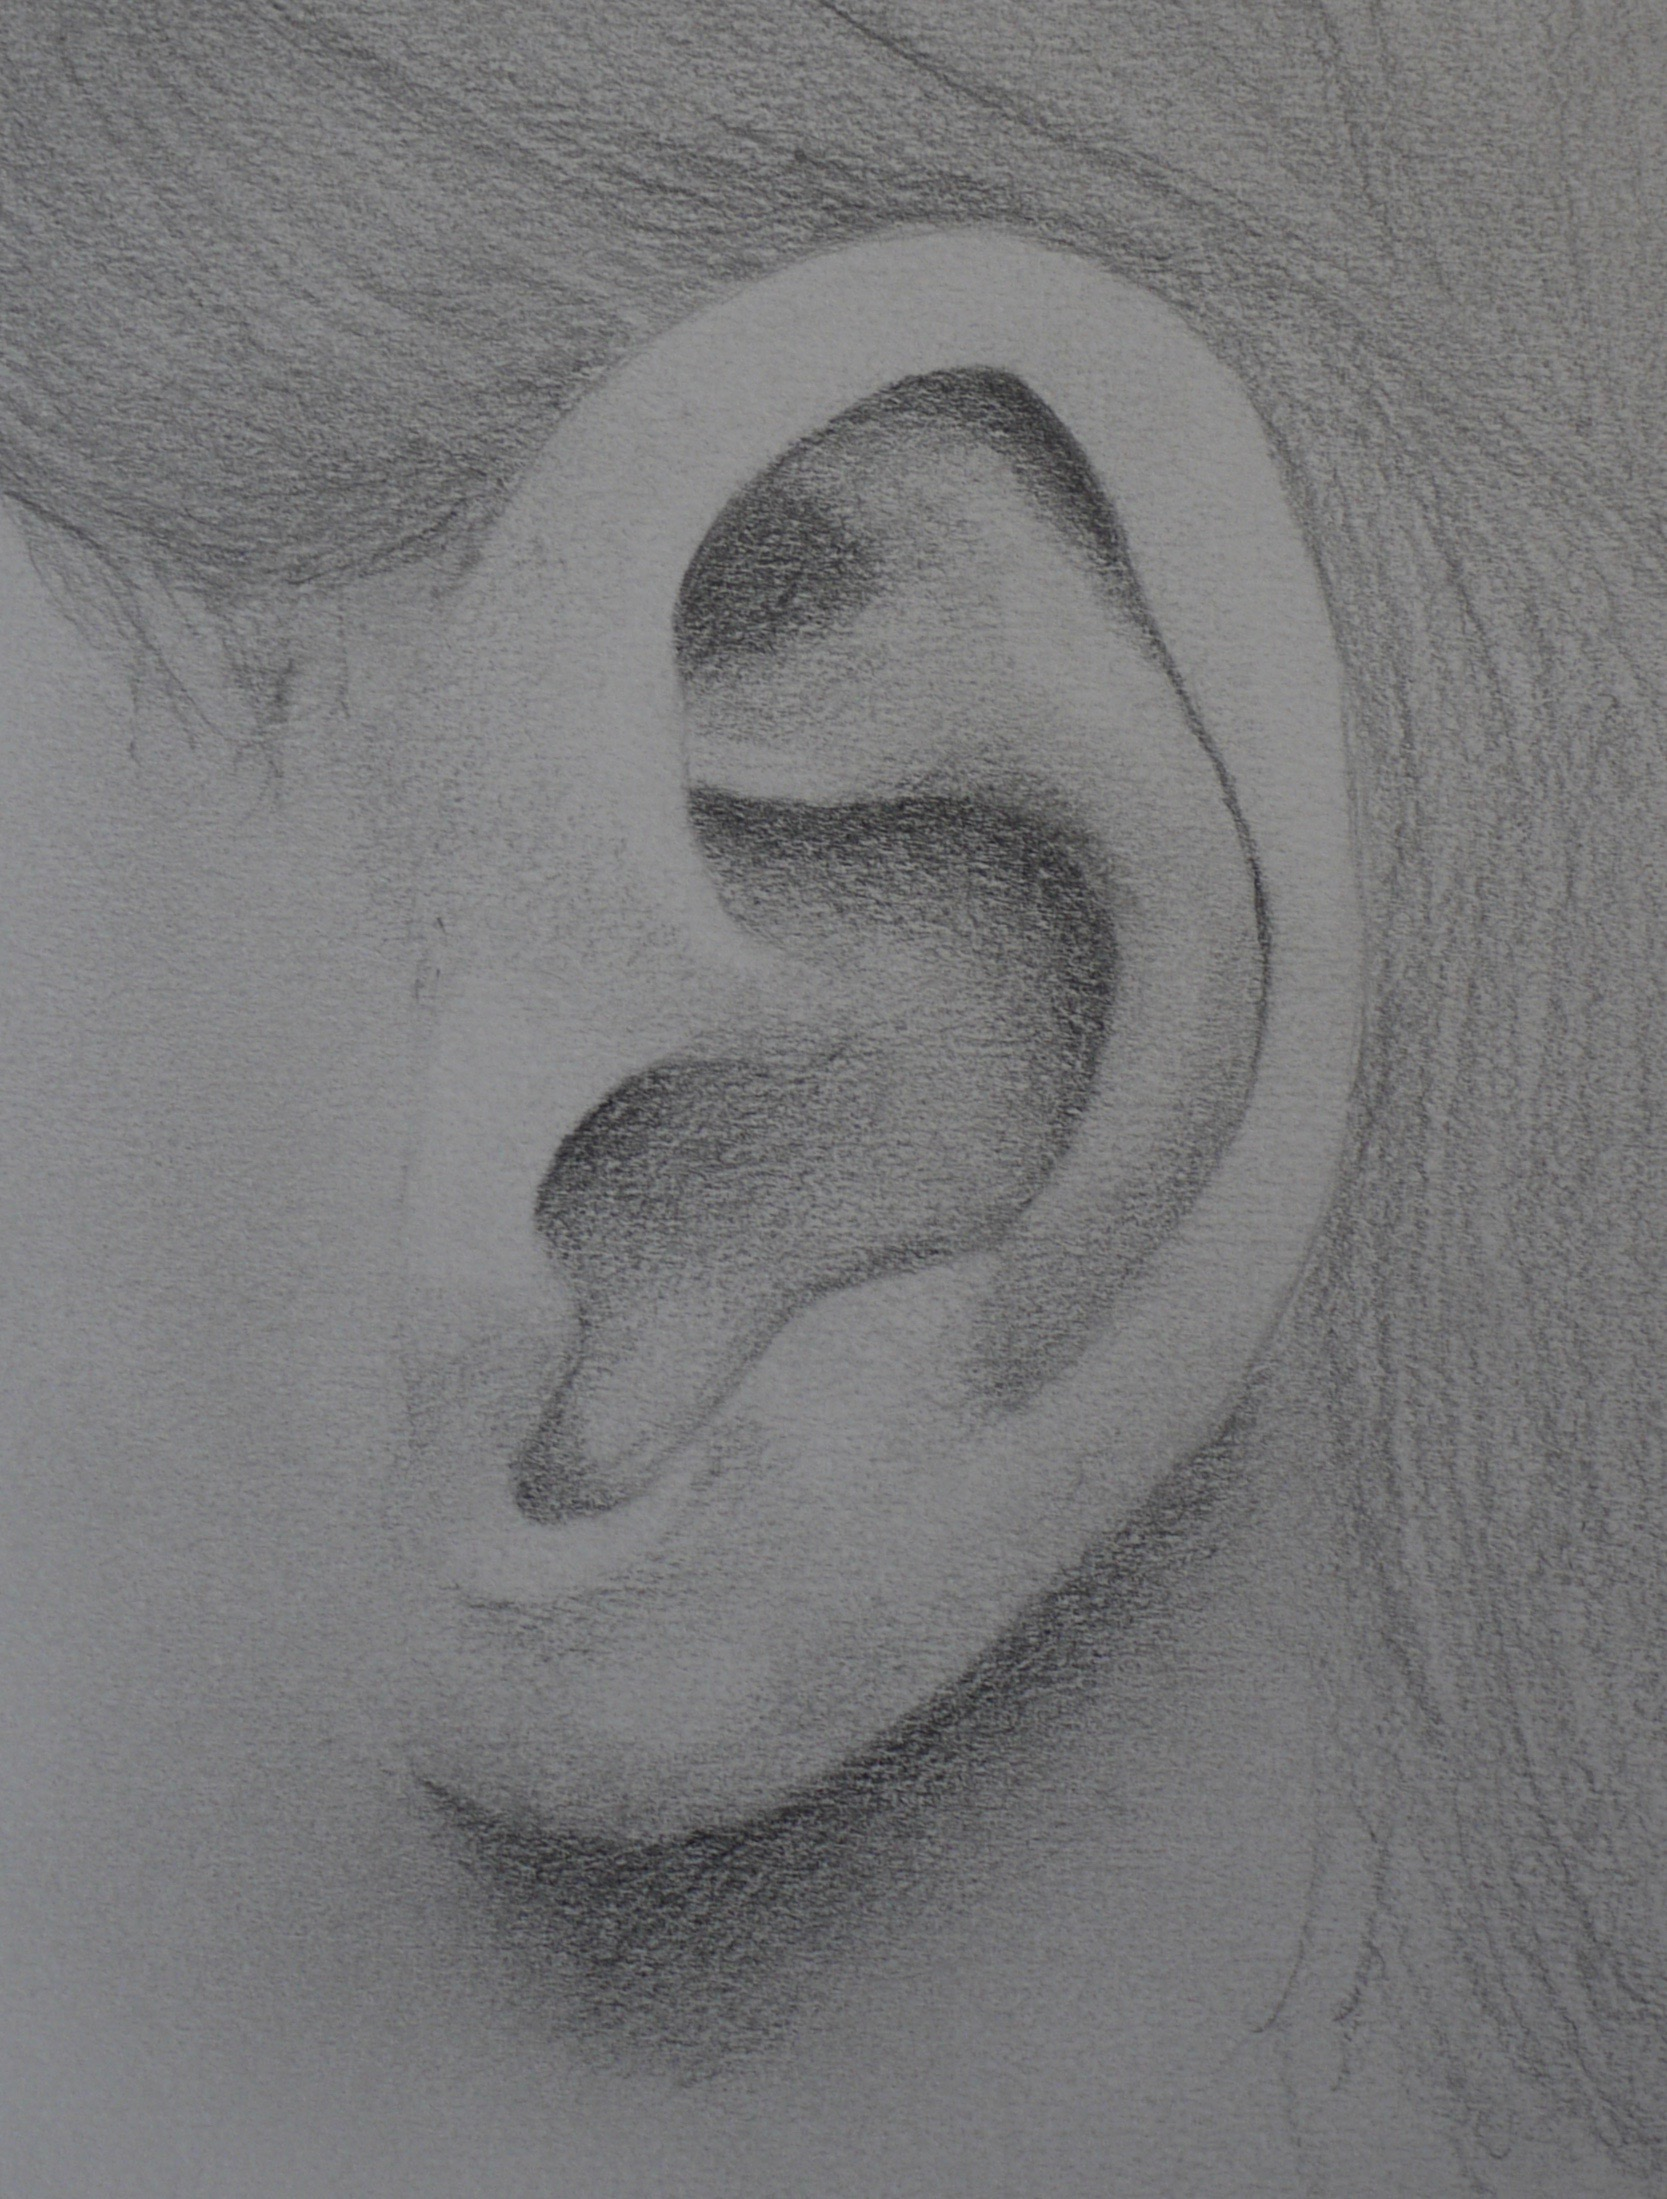 Detail of an Ear